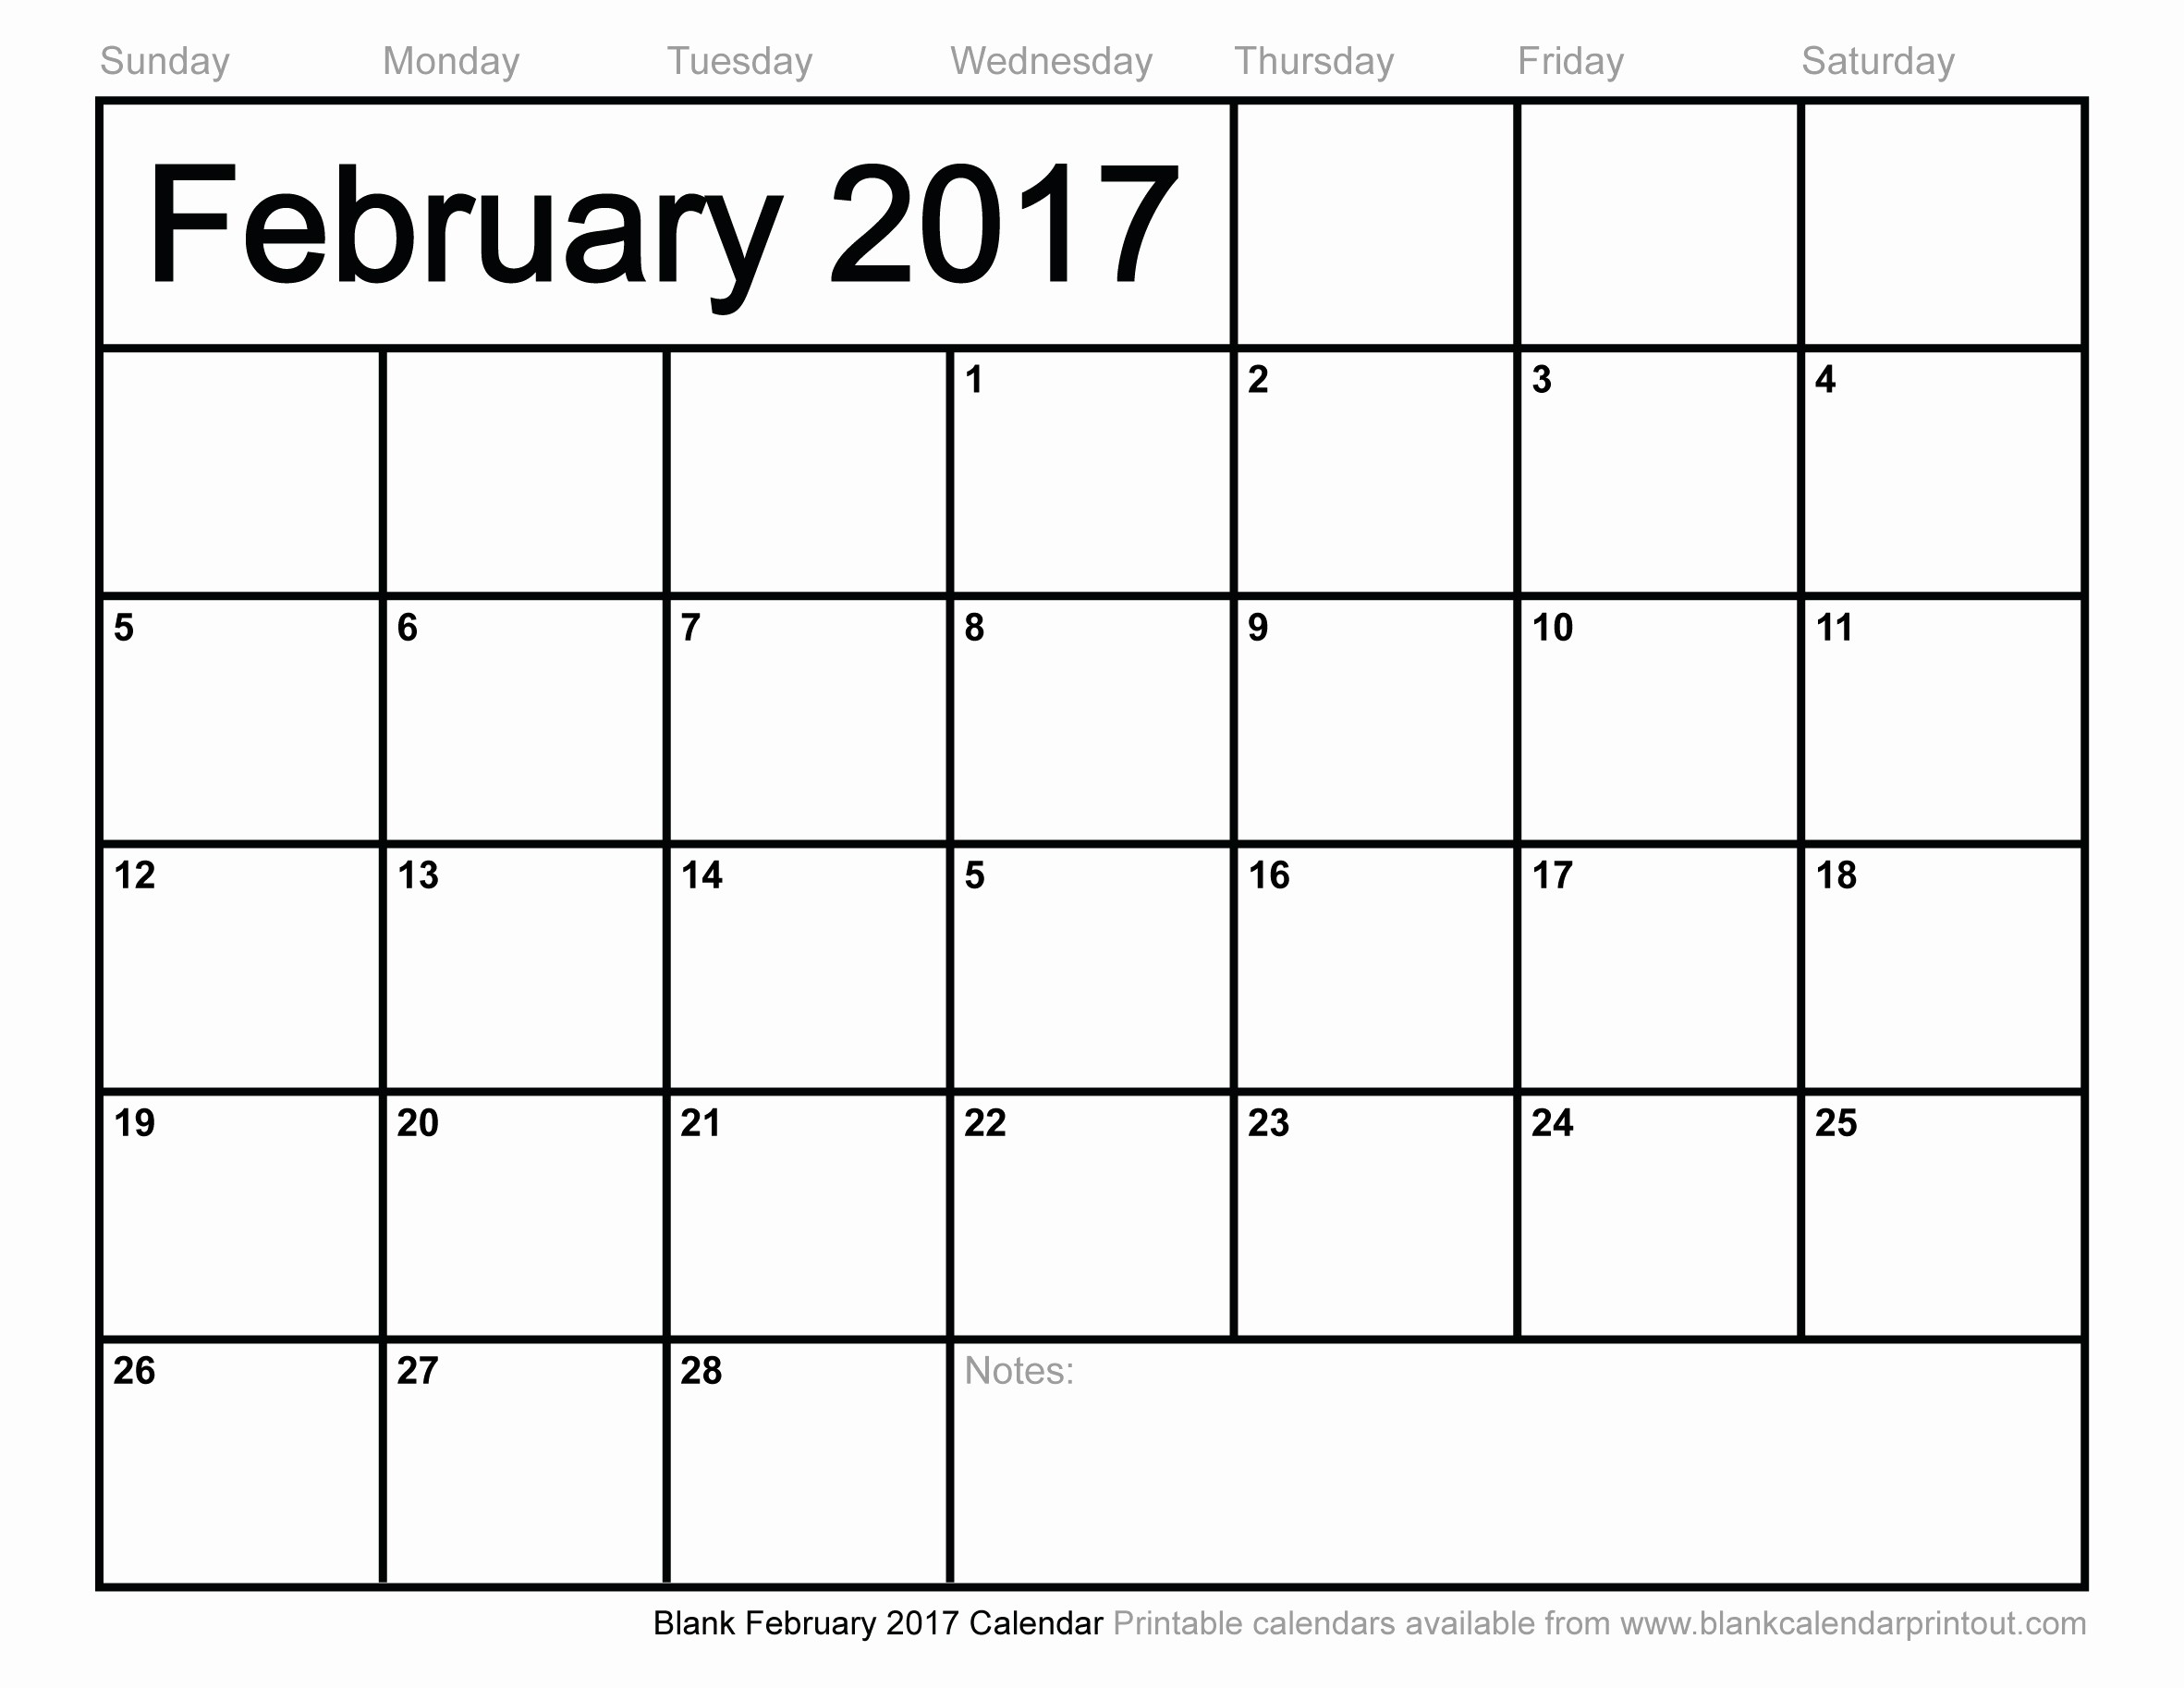 Blank Monthly Calendar 2017 Printable Lovely Blank February 2017 Calendar to Print